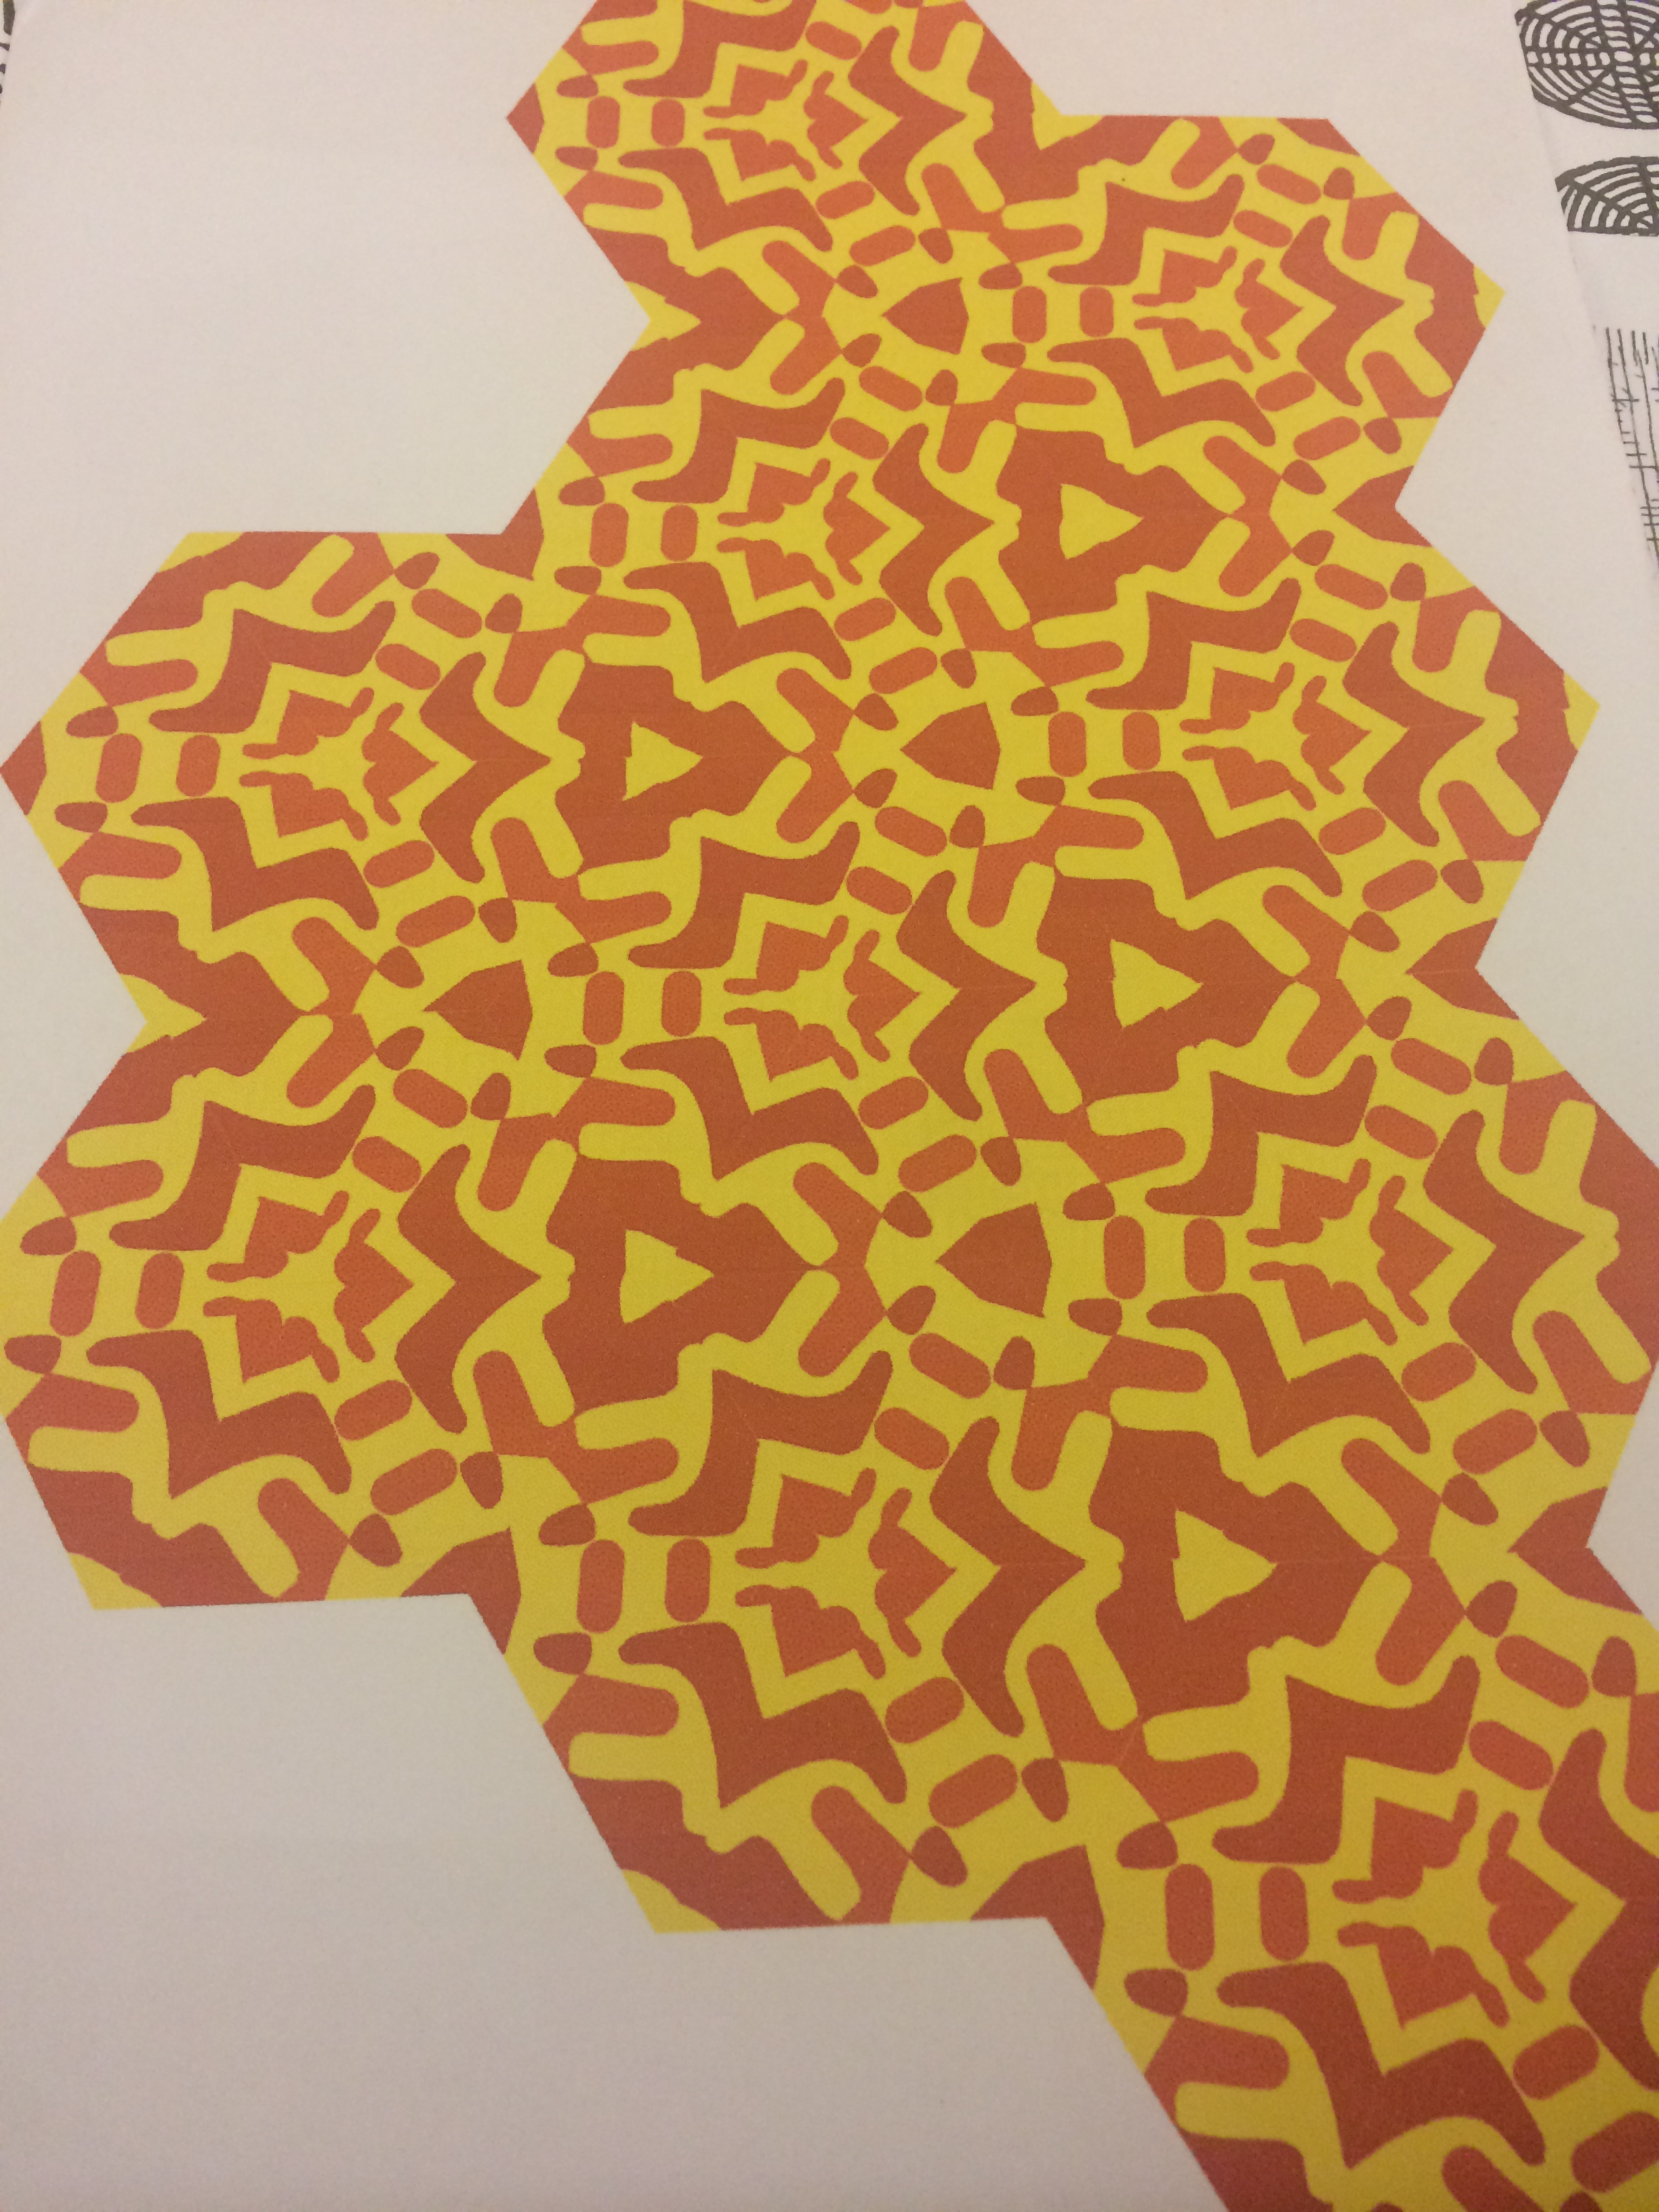 Tessellation Printing continues